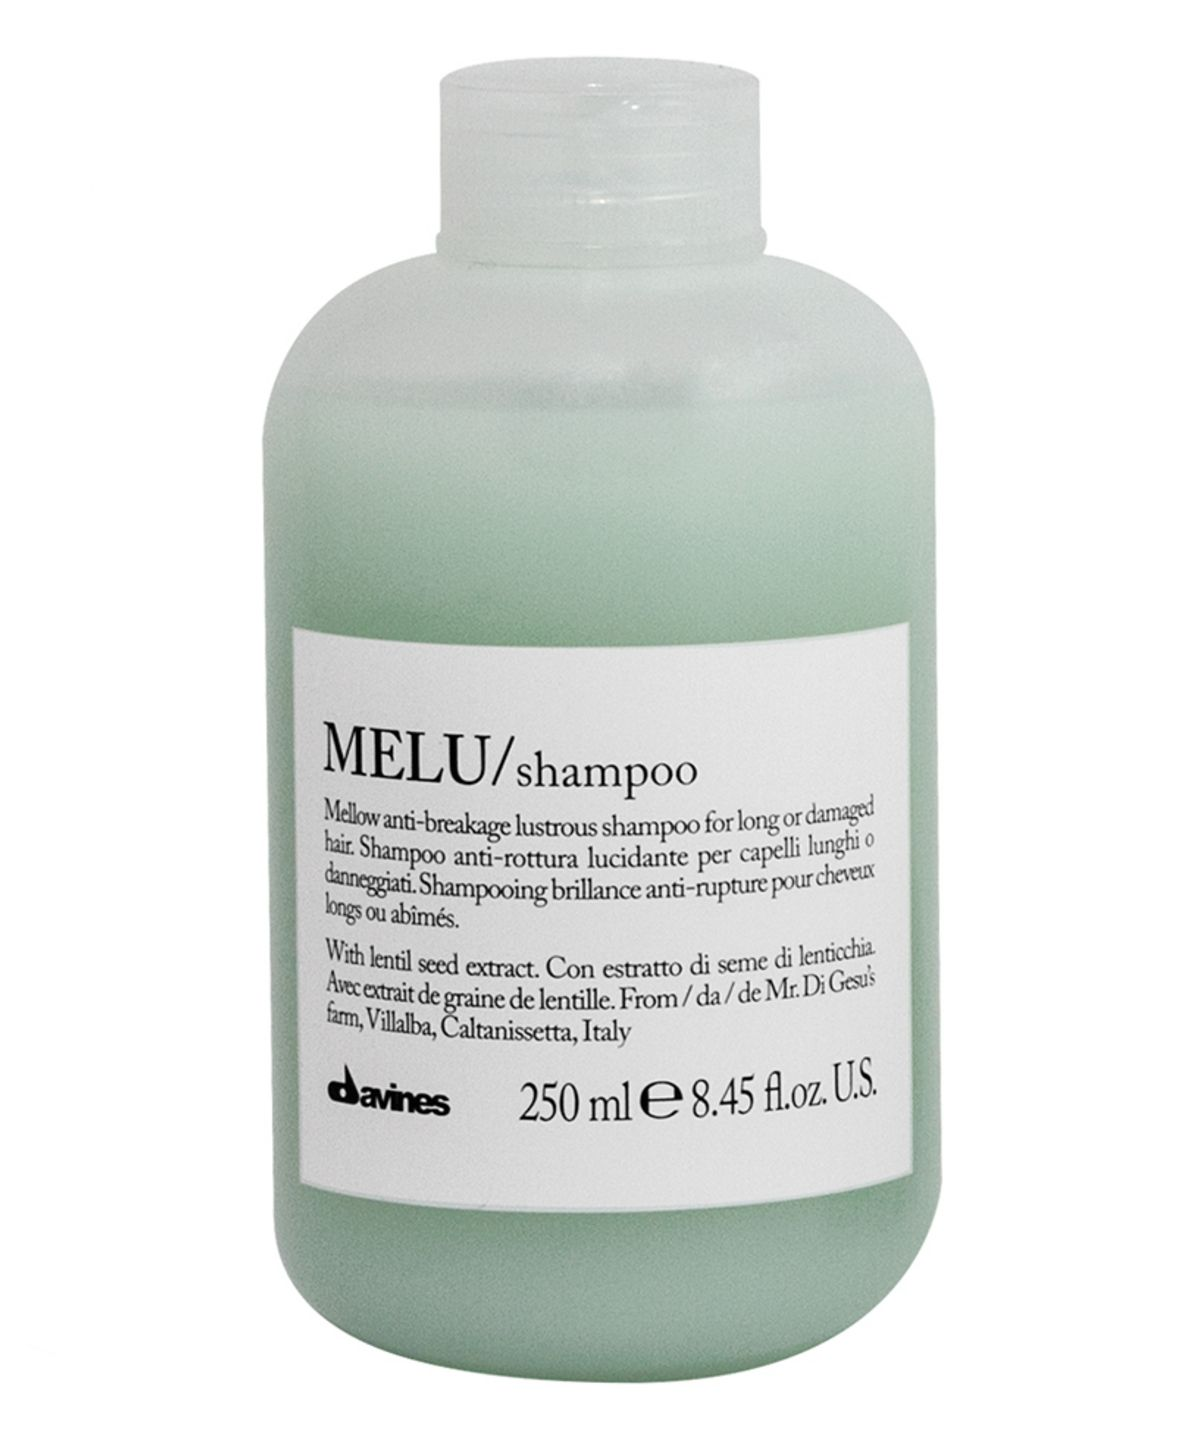 melu shampoo for fine delicate hair by davines. Black Bedroom Furniture Sets. Home Design Ideas